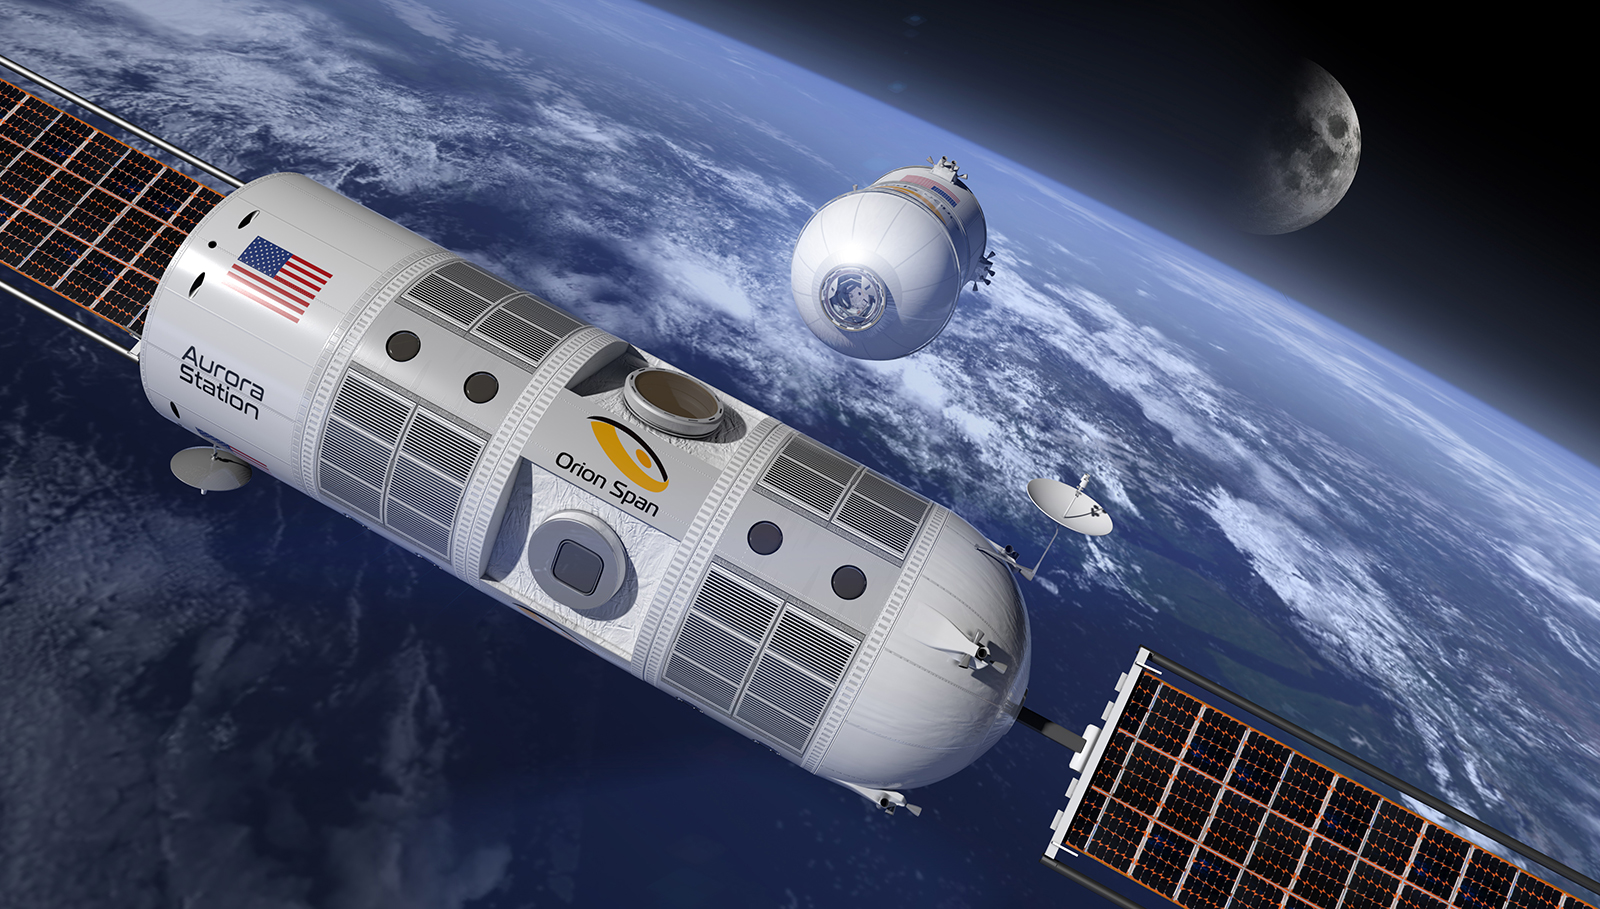 The World's First Space Hotel is Coming Soon